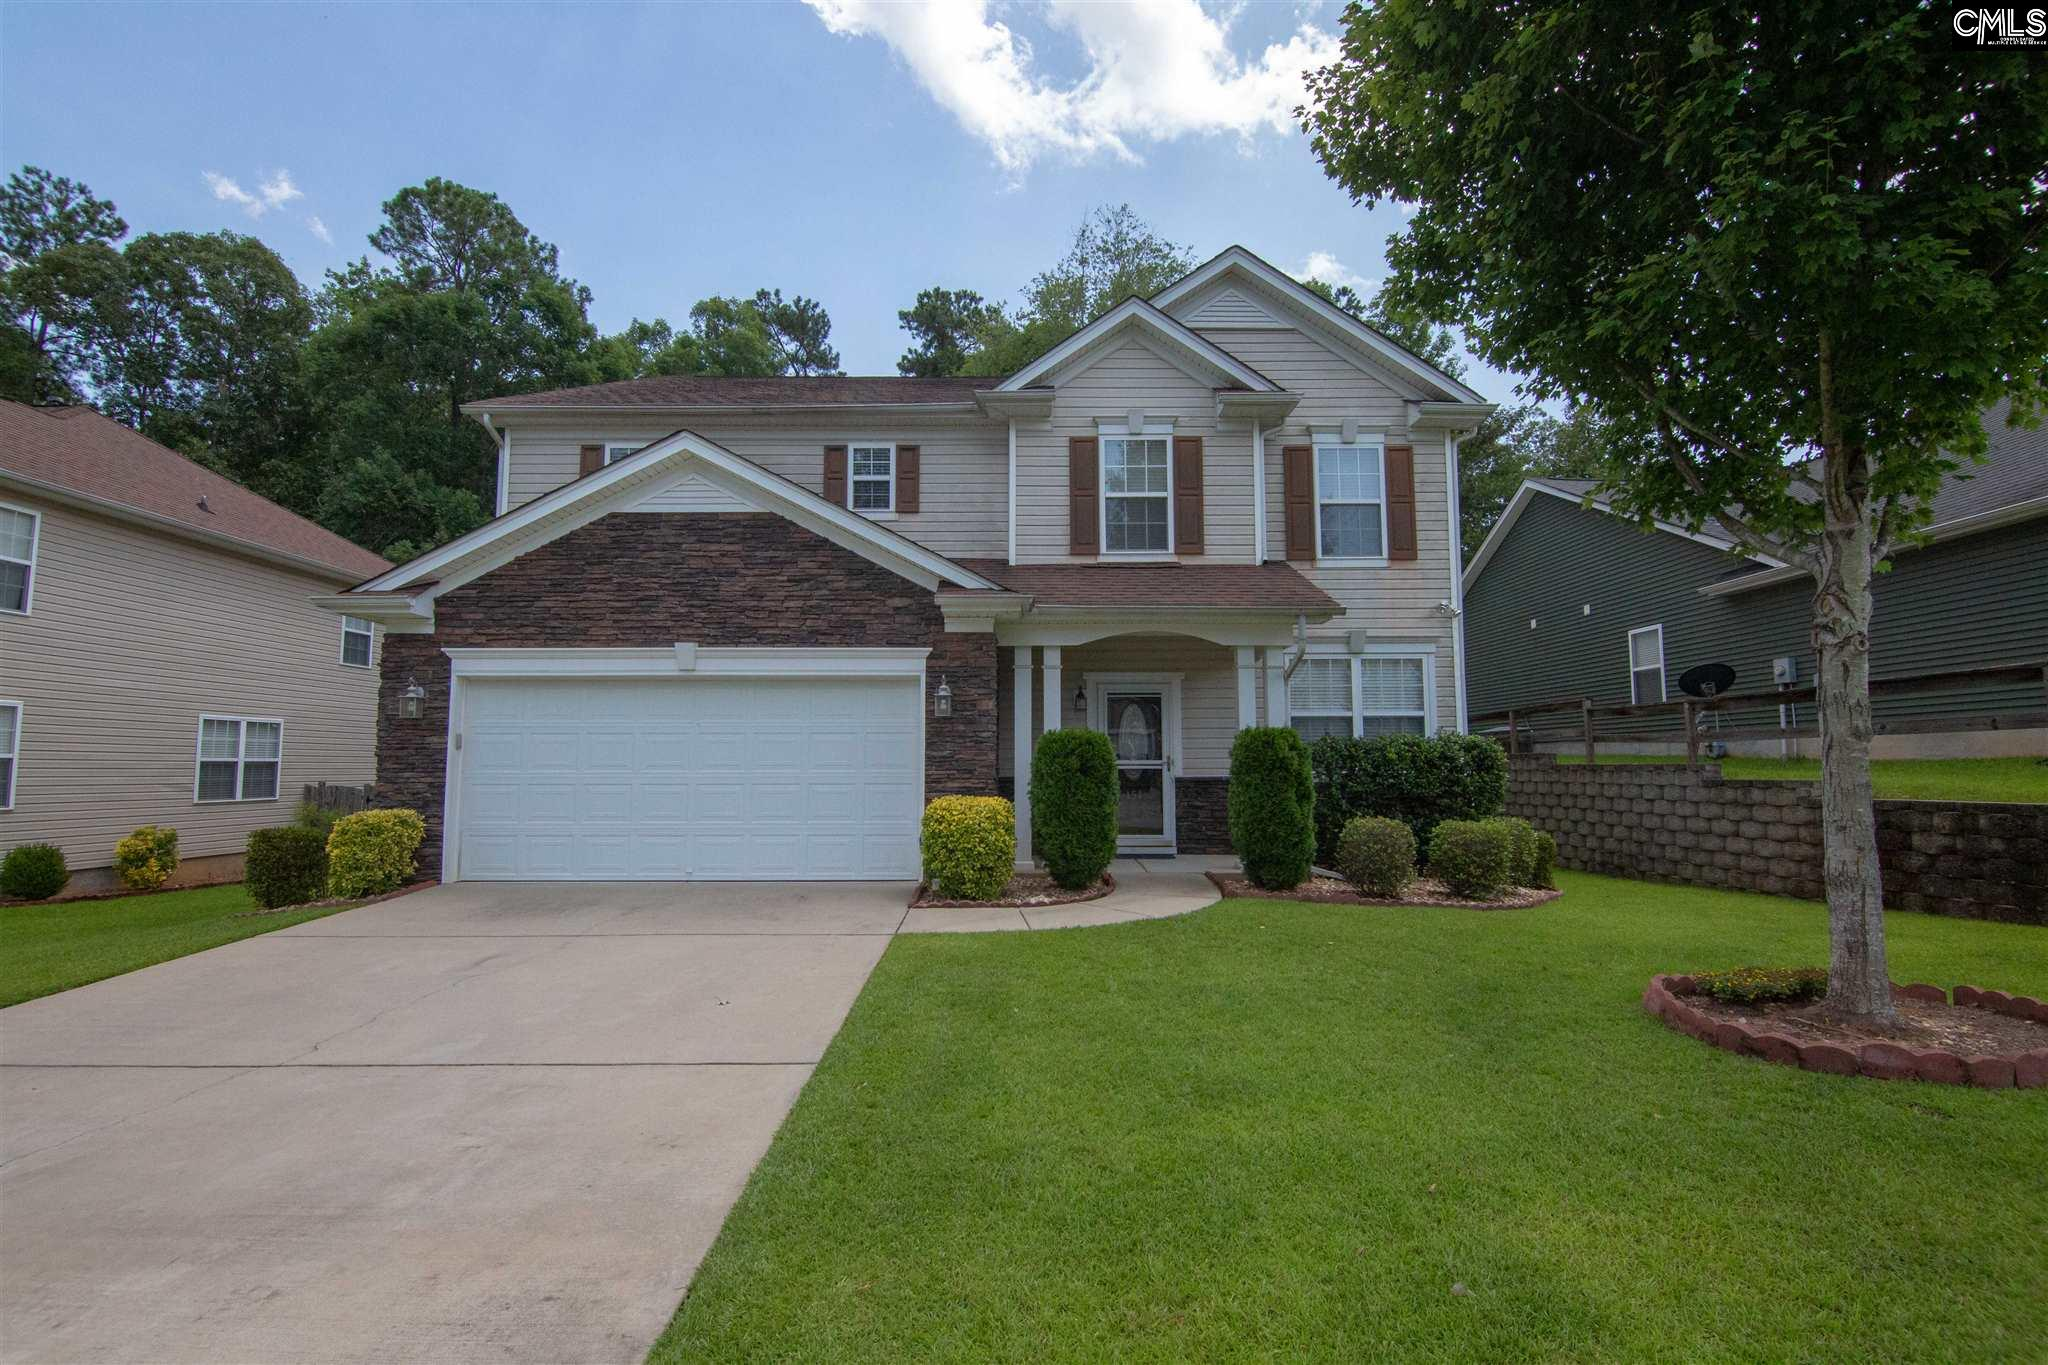 151 Underwood Lexington, SC 29072